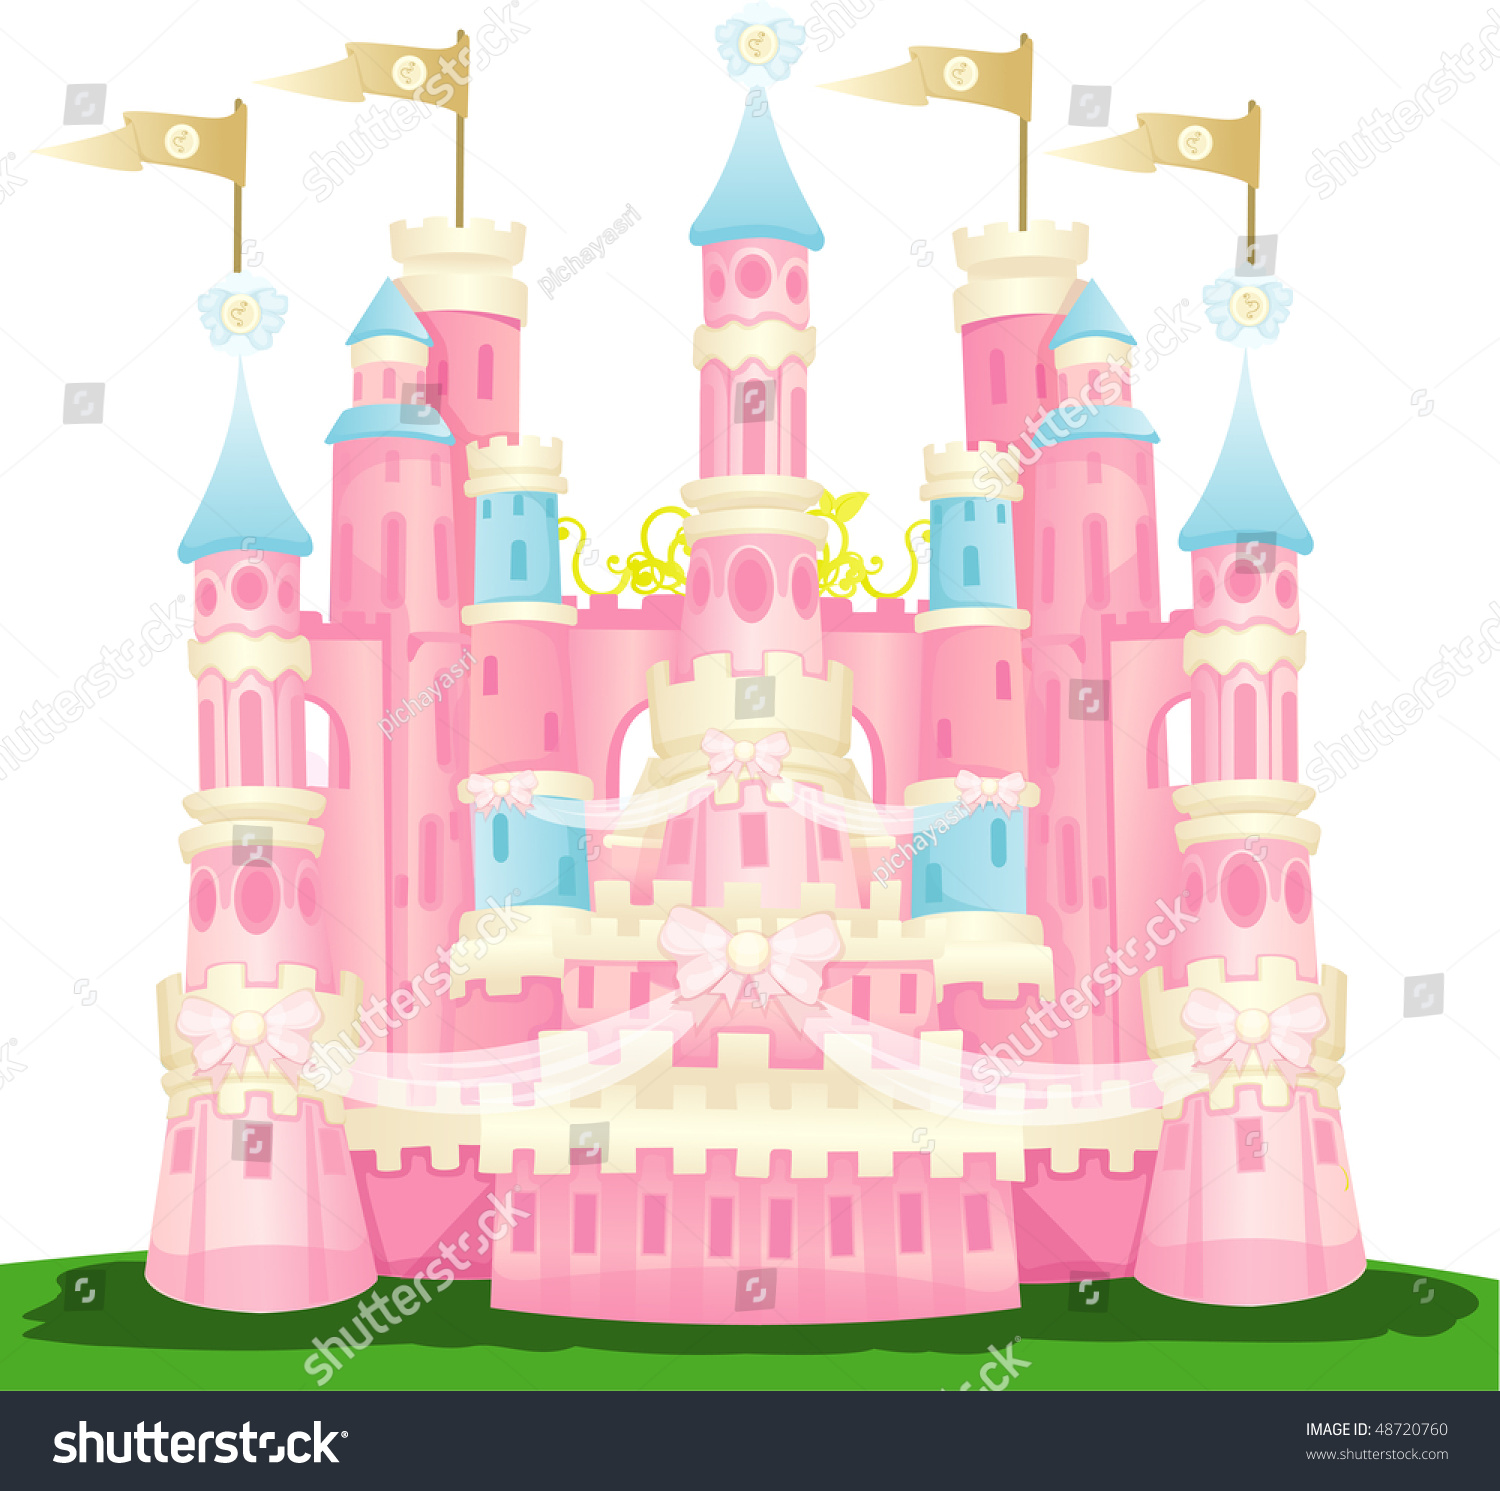 illustration of isolated pink castle on white background